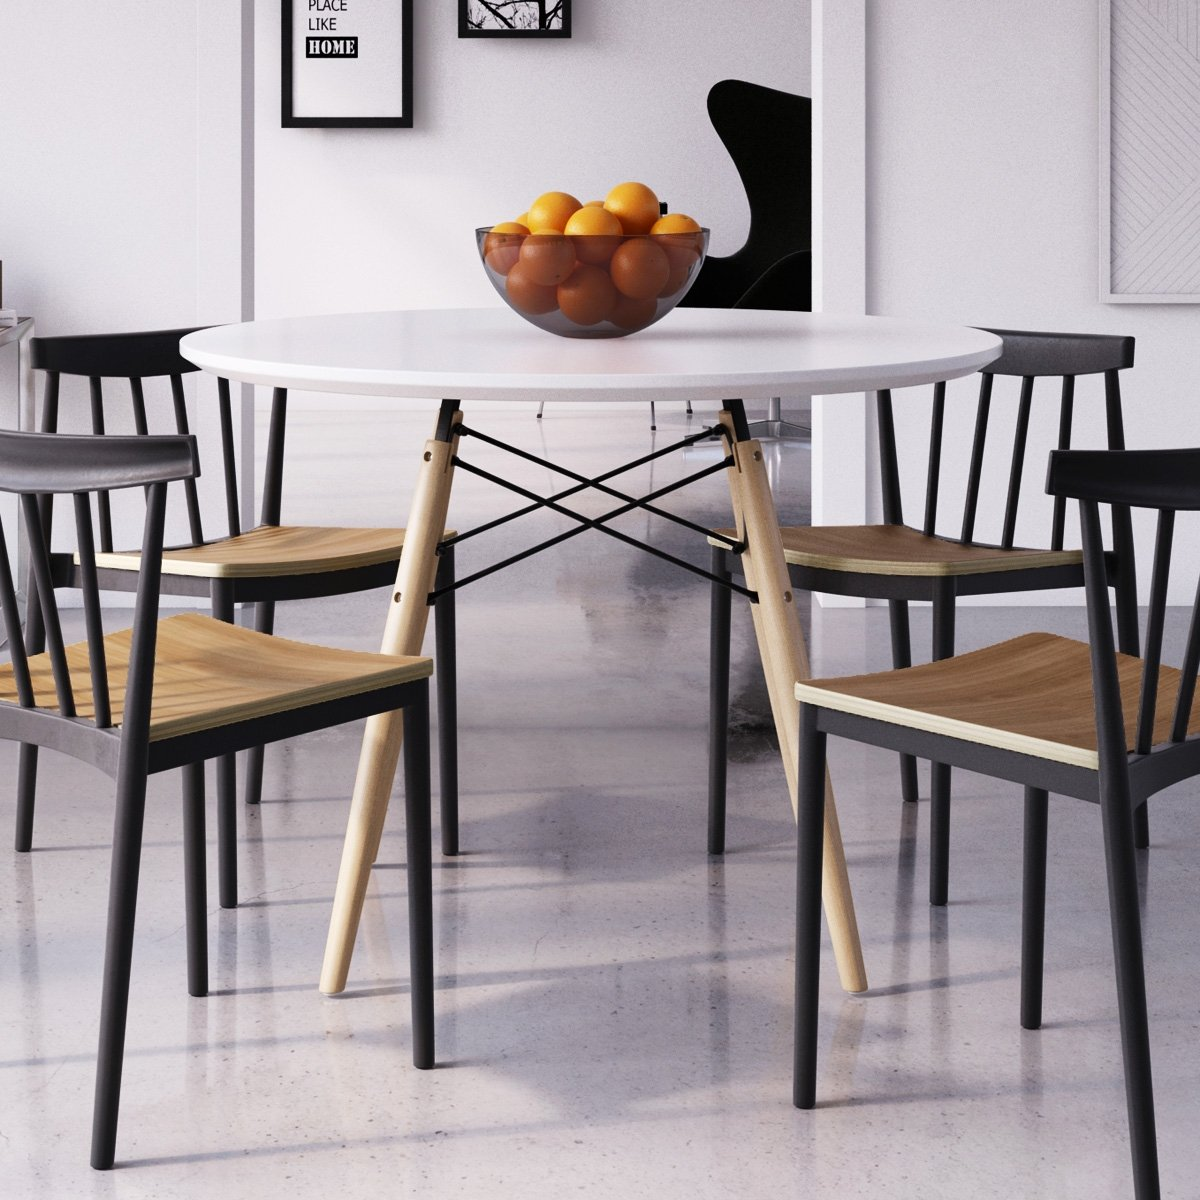 Amazon.com - Eiffel Large Round Dining Table, Natural Legs ...